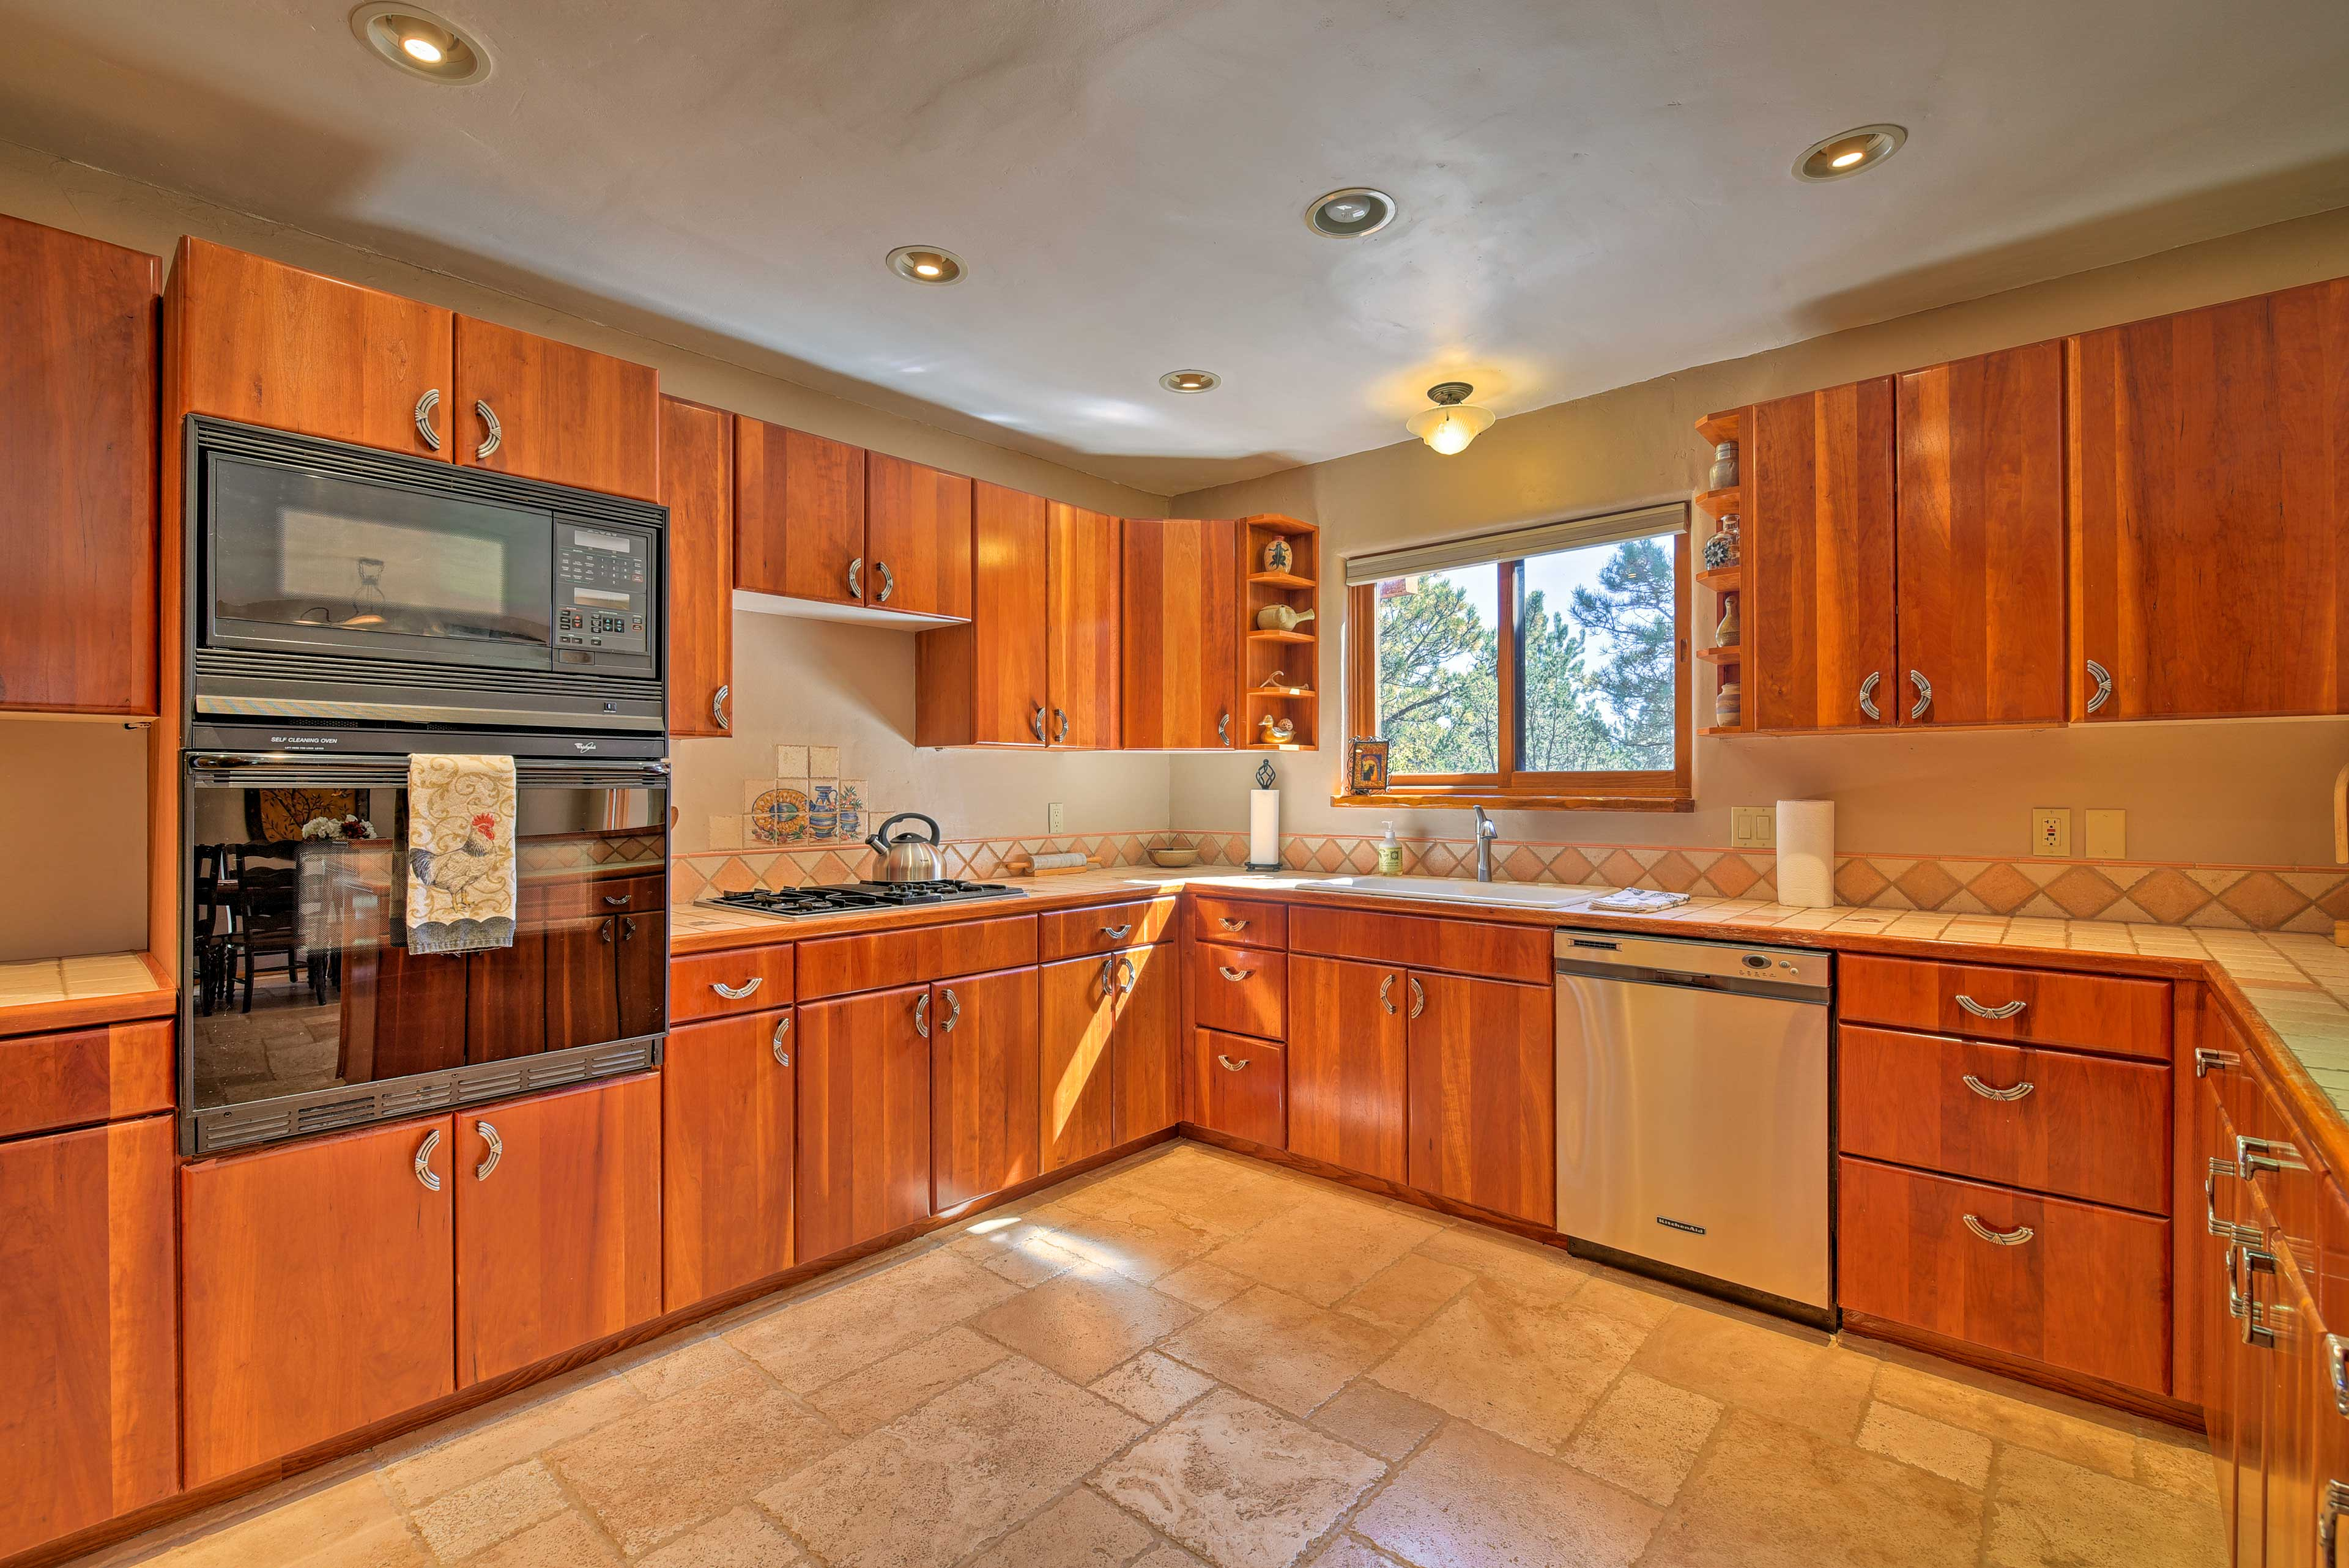 Gleaming cabinets hold everything you need to prepare your favorite dishes.